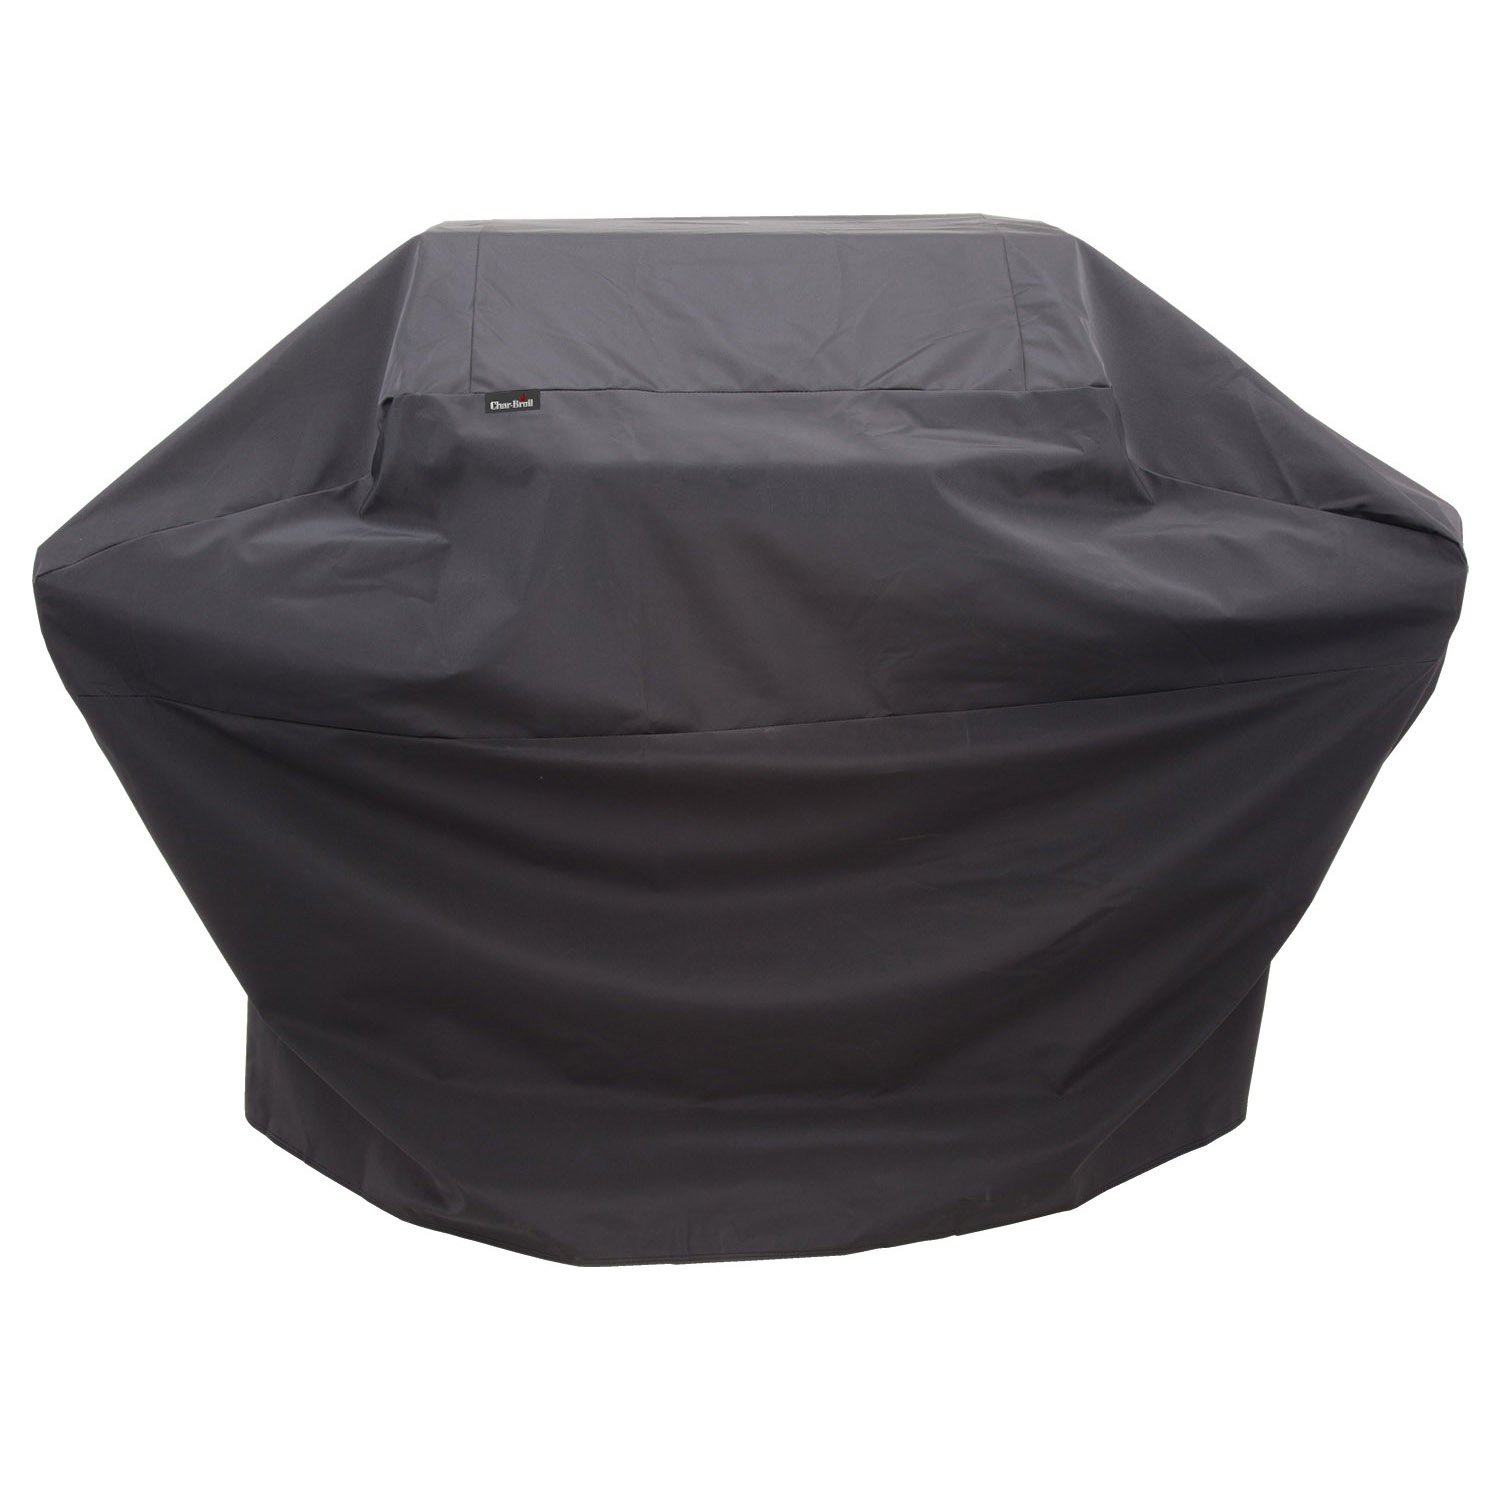 Char Broil Performance Grill Cover, 3-4 Burner: Large by Char-Broil (Image #1)